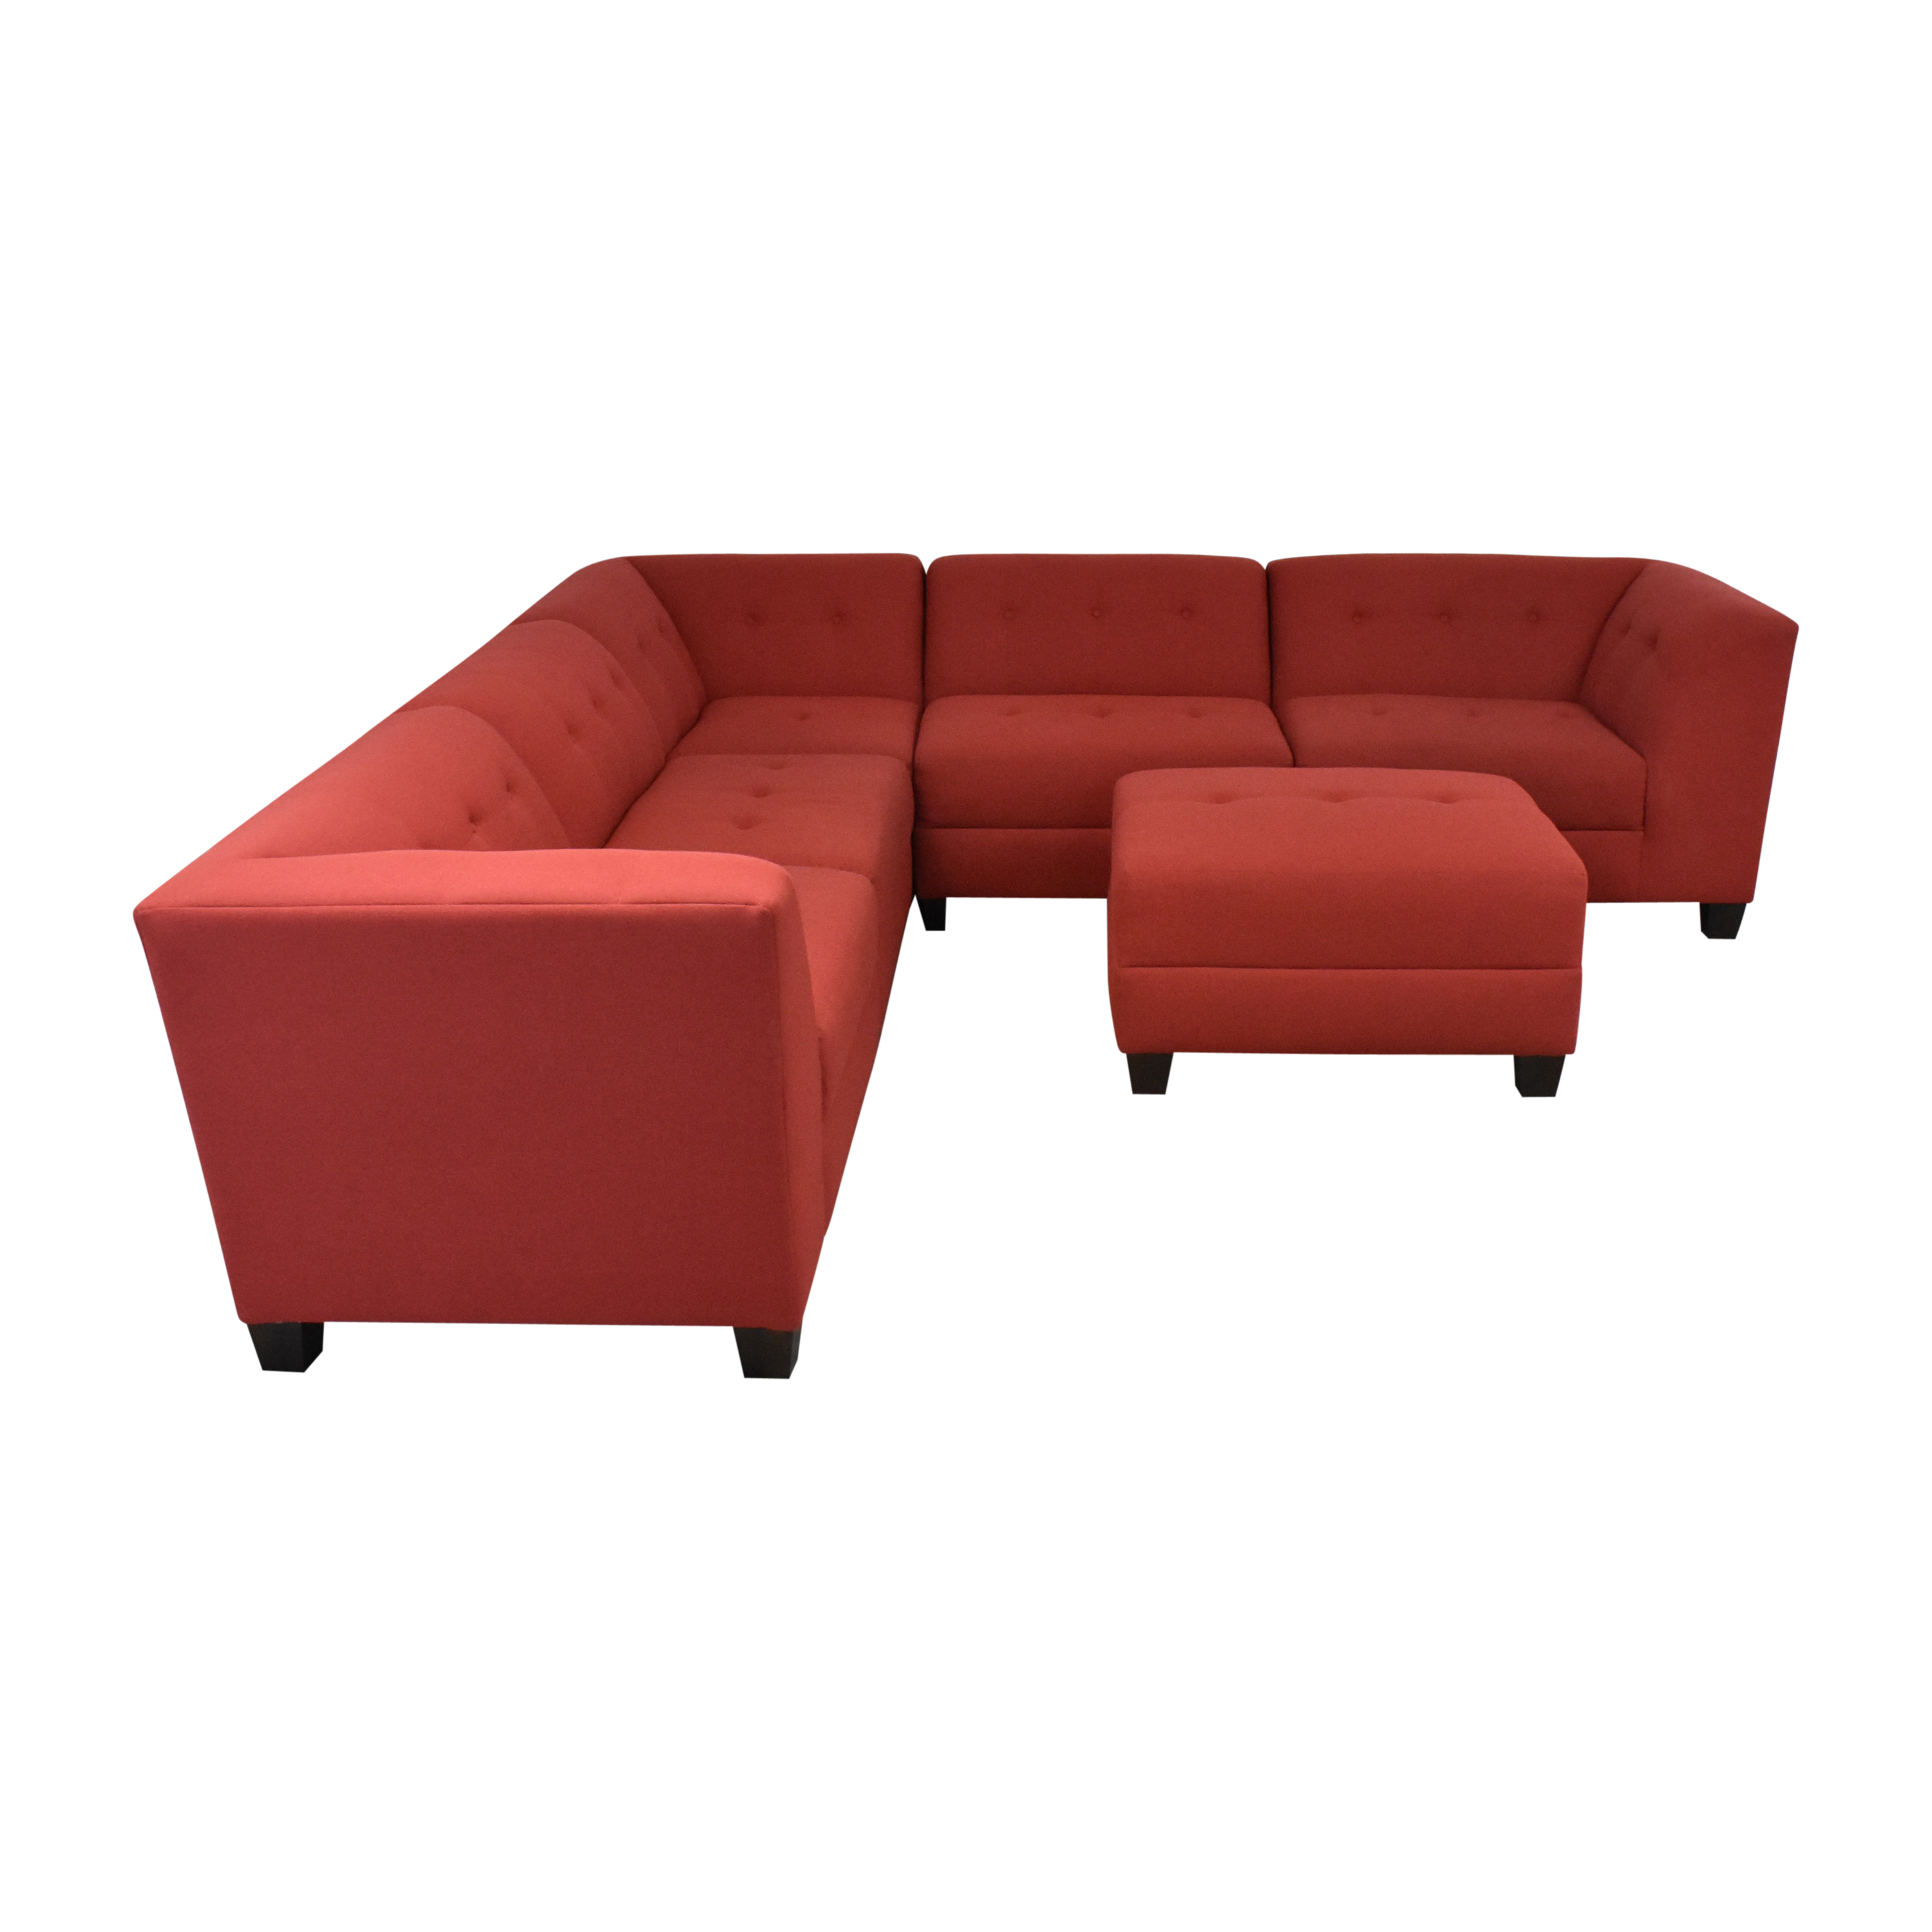 England Furniture England Furniture Miller Five Piece Sectional Sofa with Ottoman